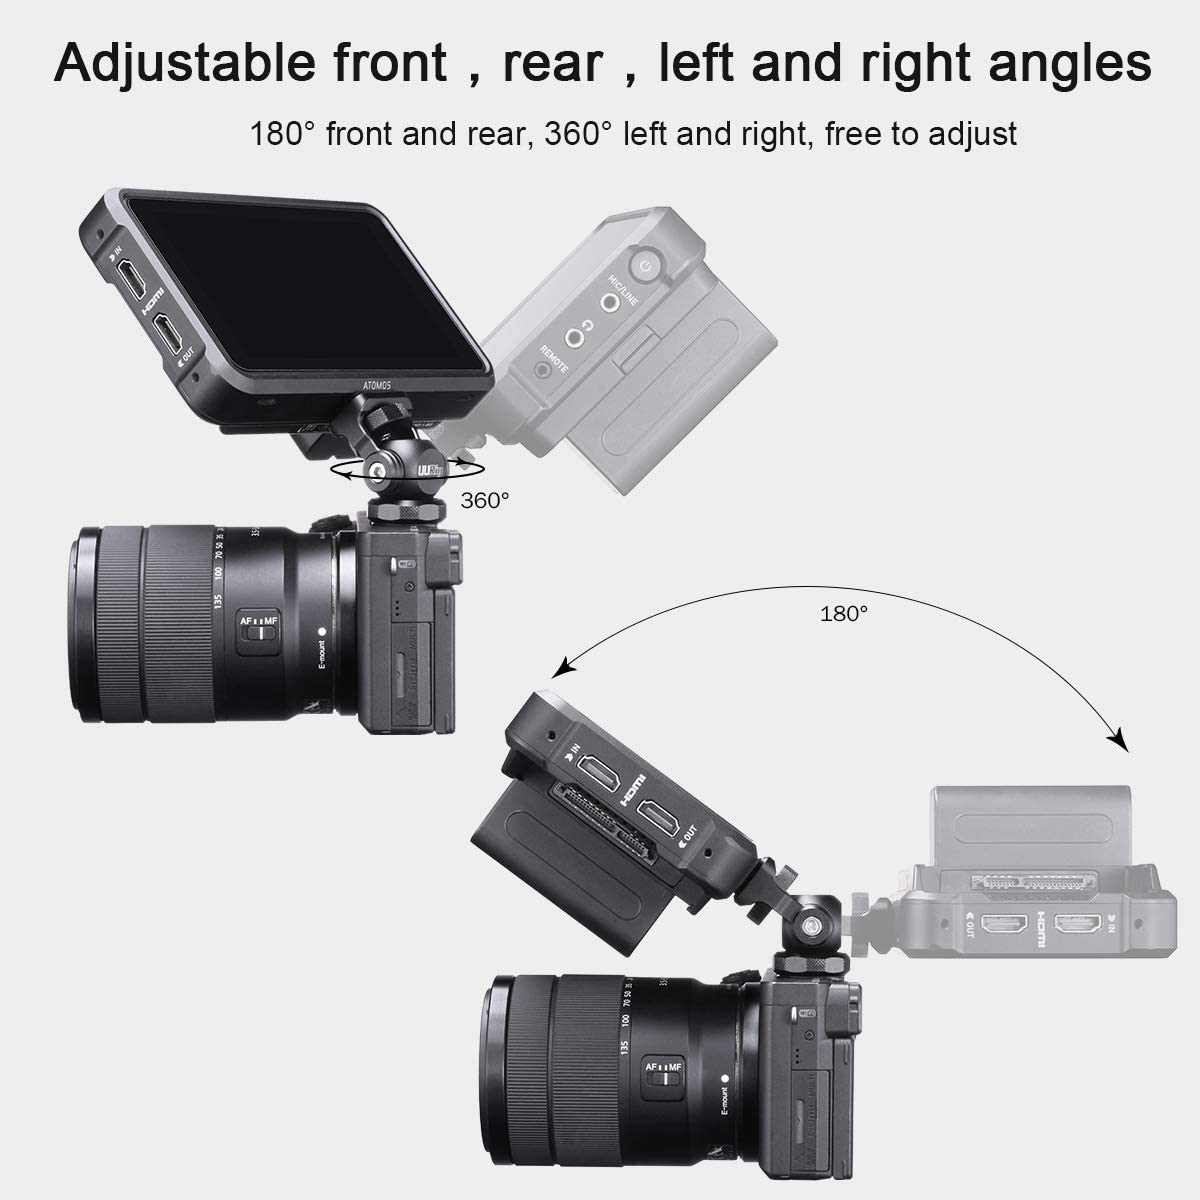 Camera Monitor Holder Adapter 180/° Upper Rotation 360/° for DSLR Mini Hot Shoe Stand Monitor Mount Microphone DSLR Field Monitor Video Light Flash Light Atomos